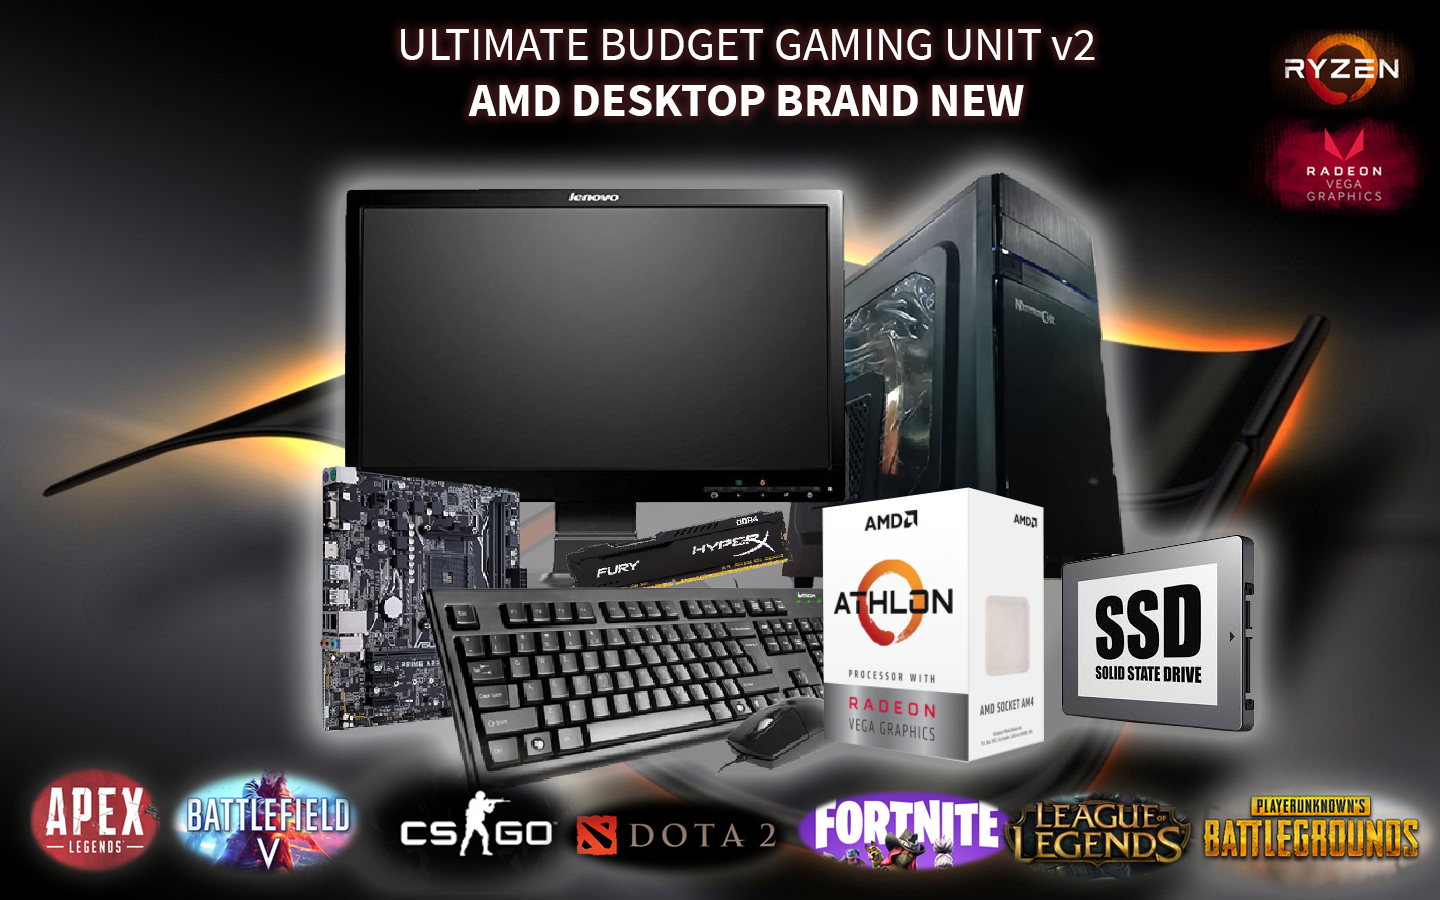 Gaming Pcs For Sale Online Gaming Computers Prices Brands Specs In Philippines Lazada Com Ph